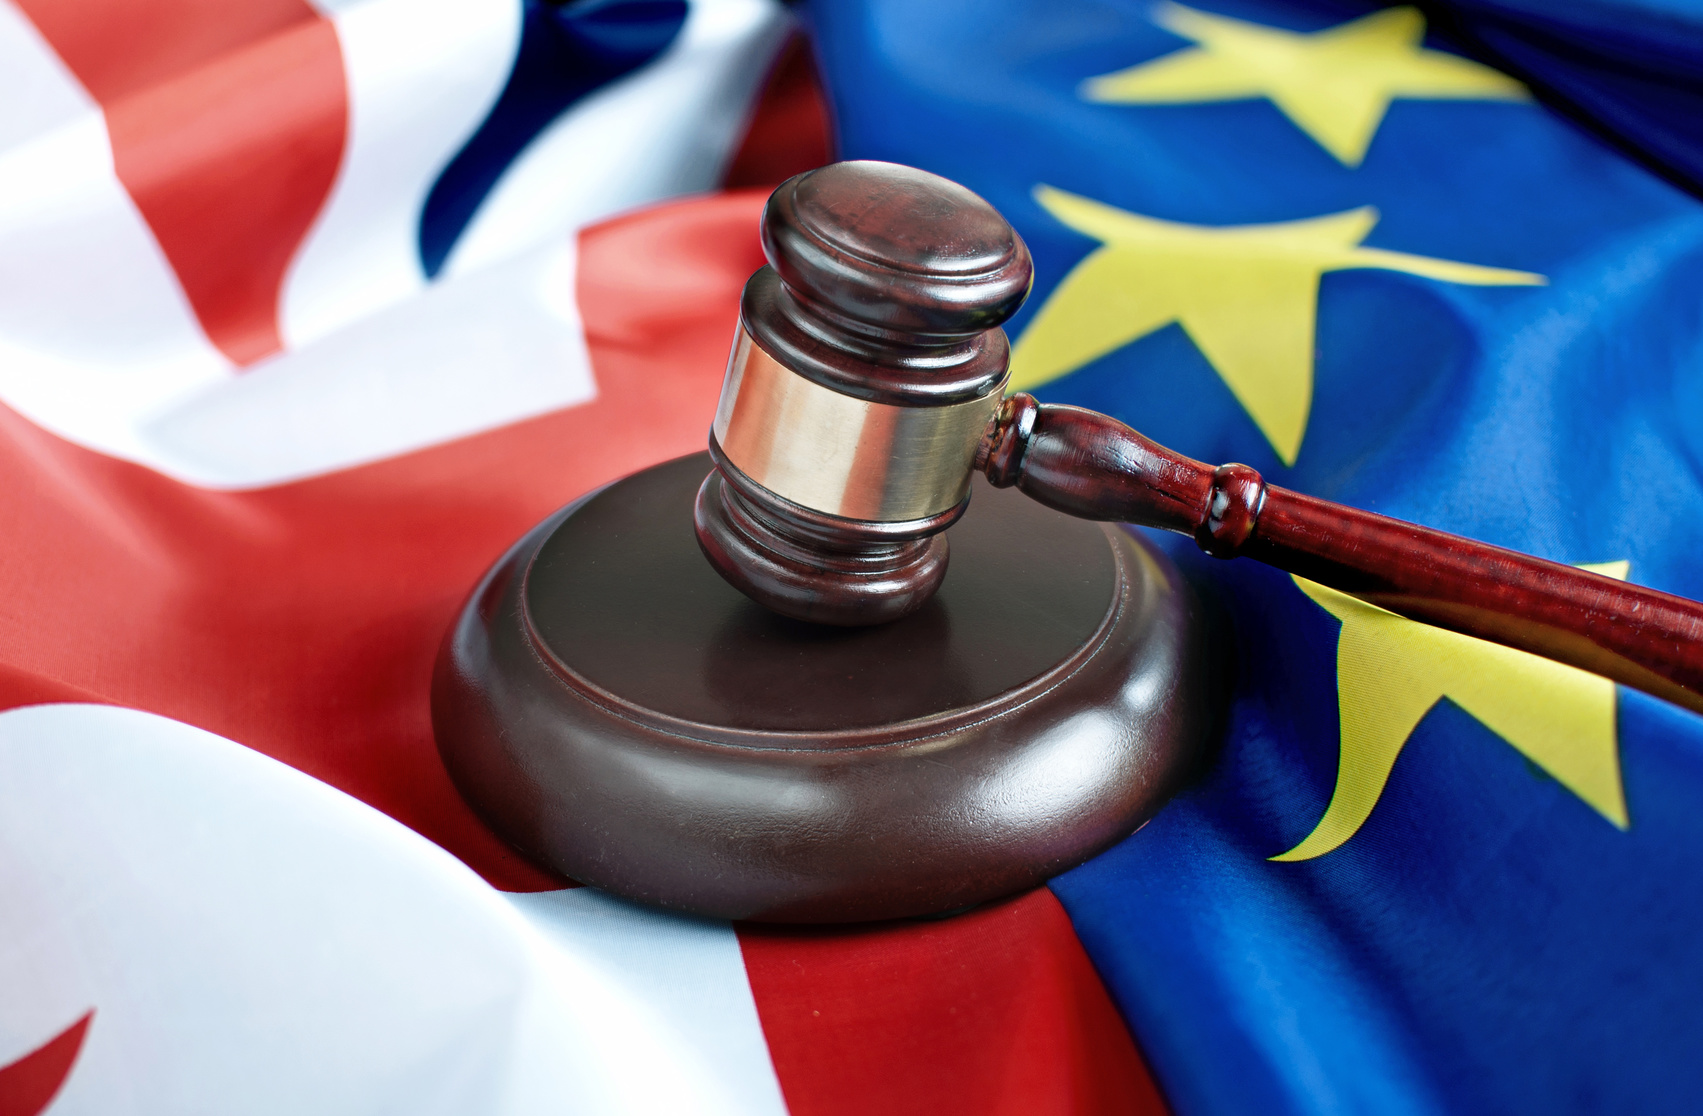 Brexit and law